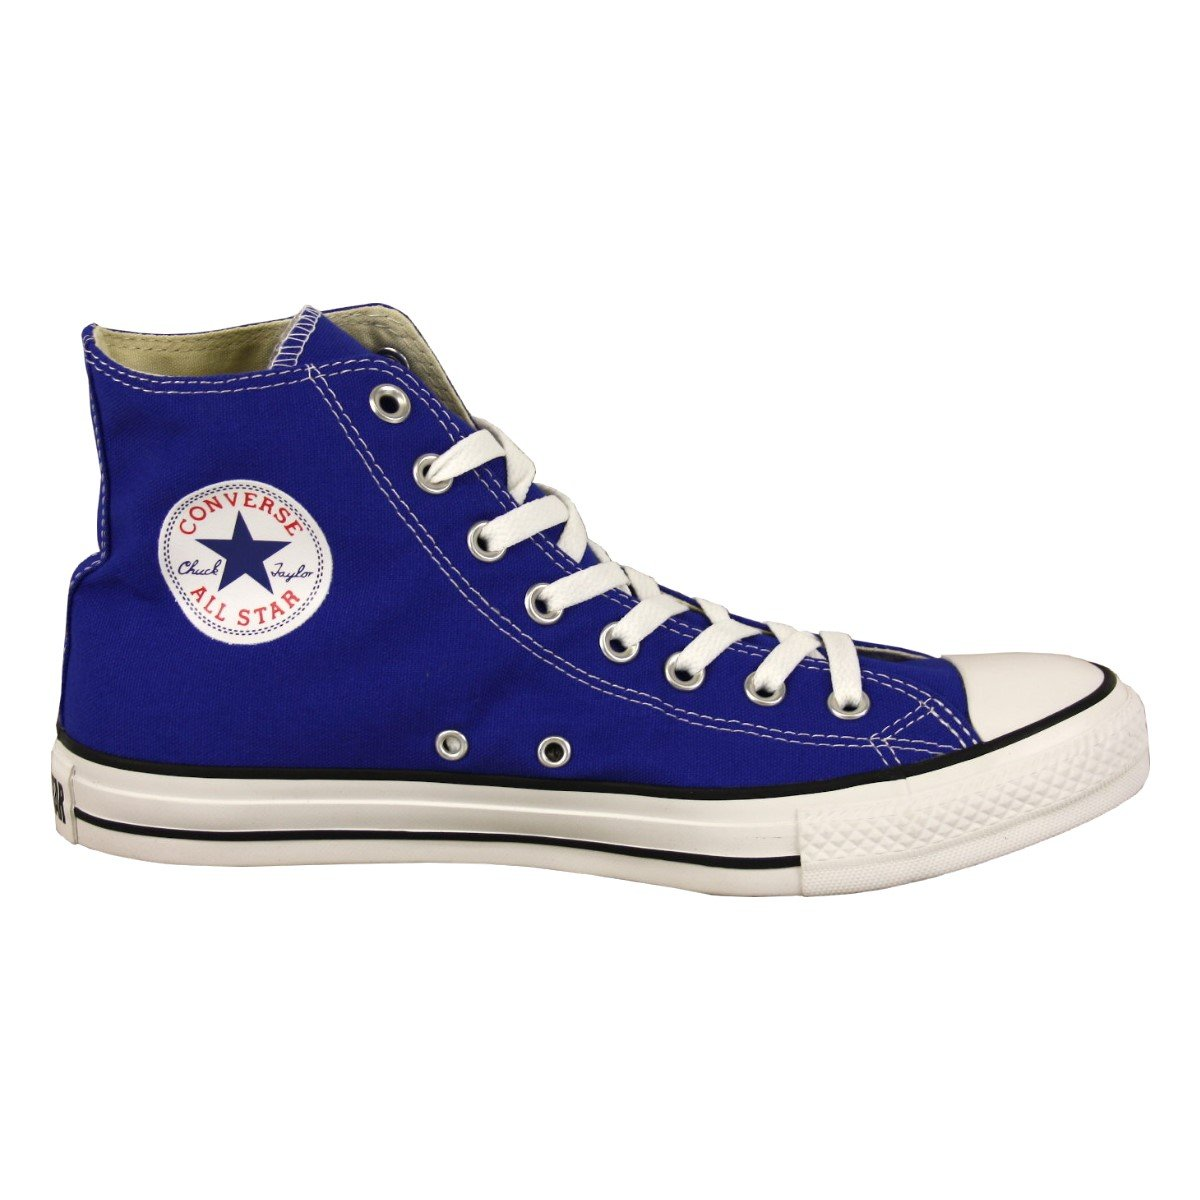 Chucks Converse All Star Hi Blau